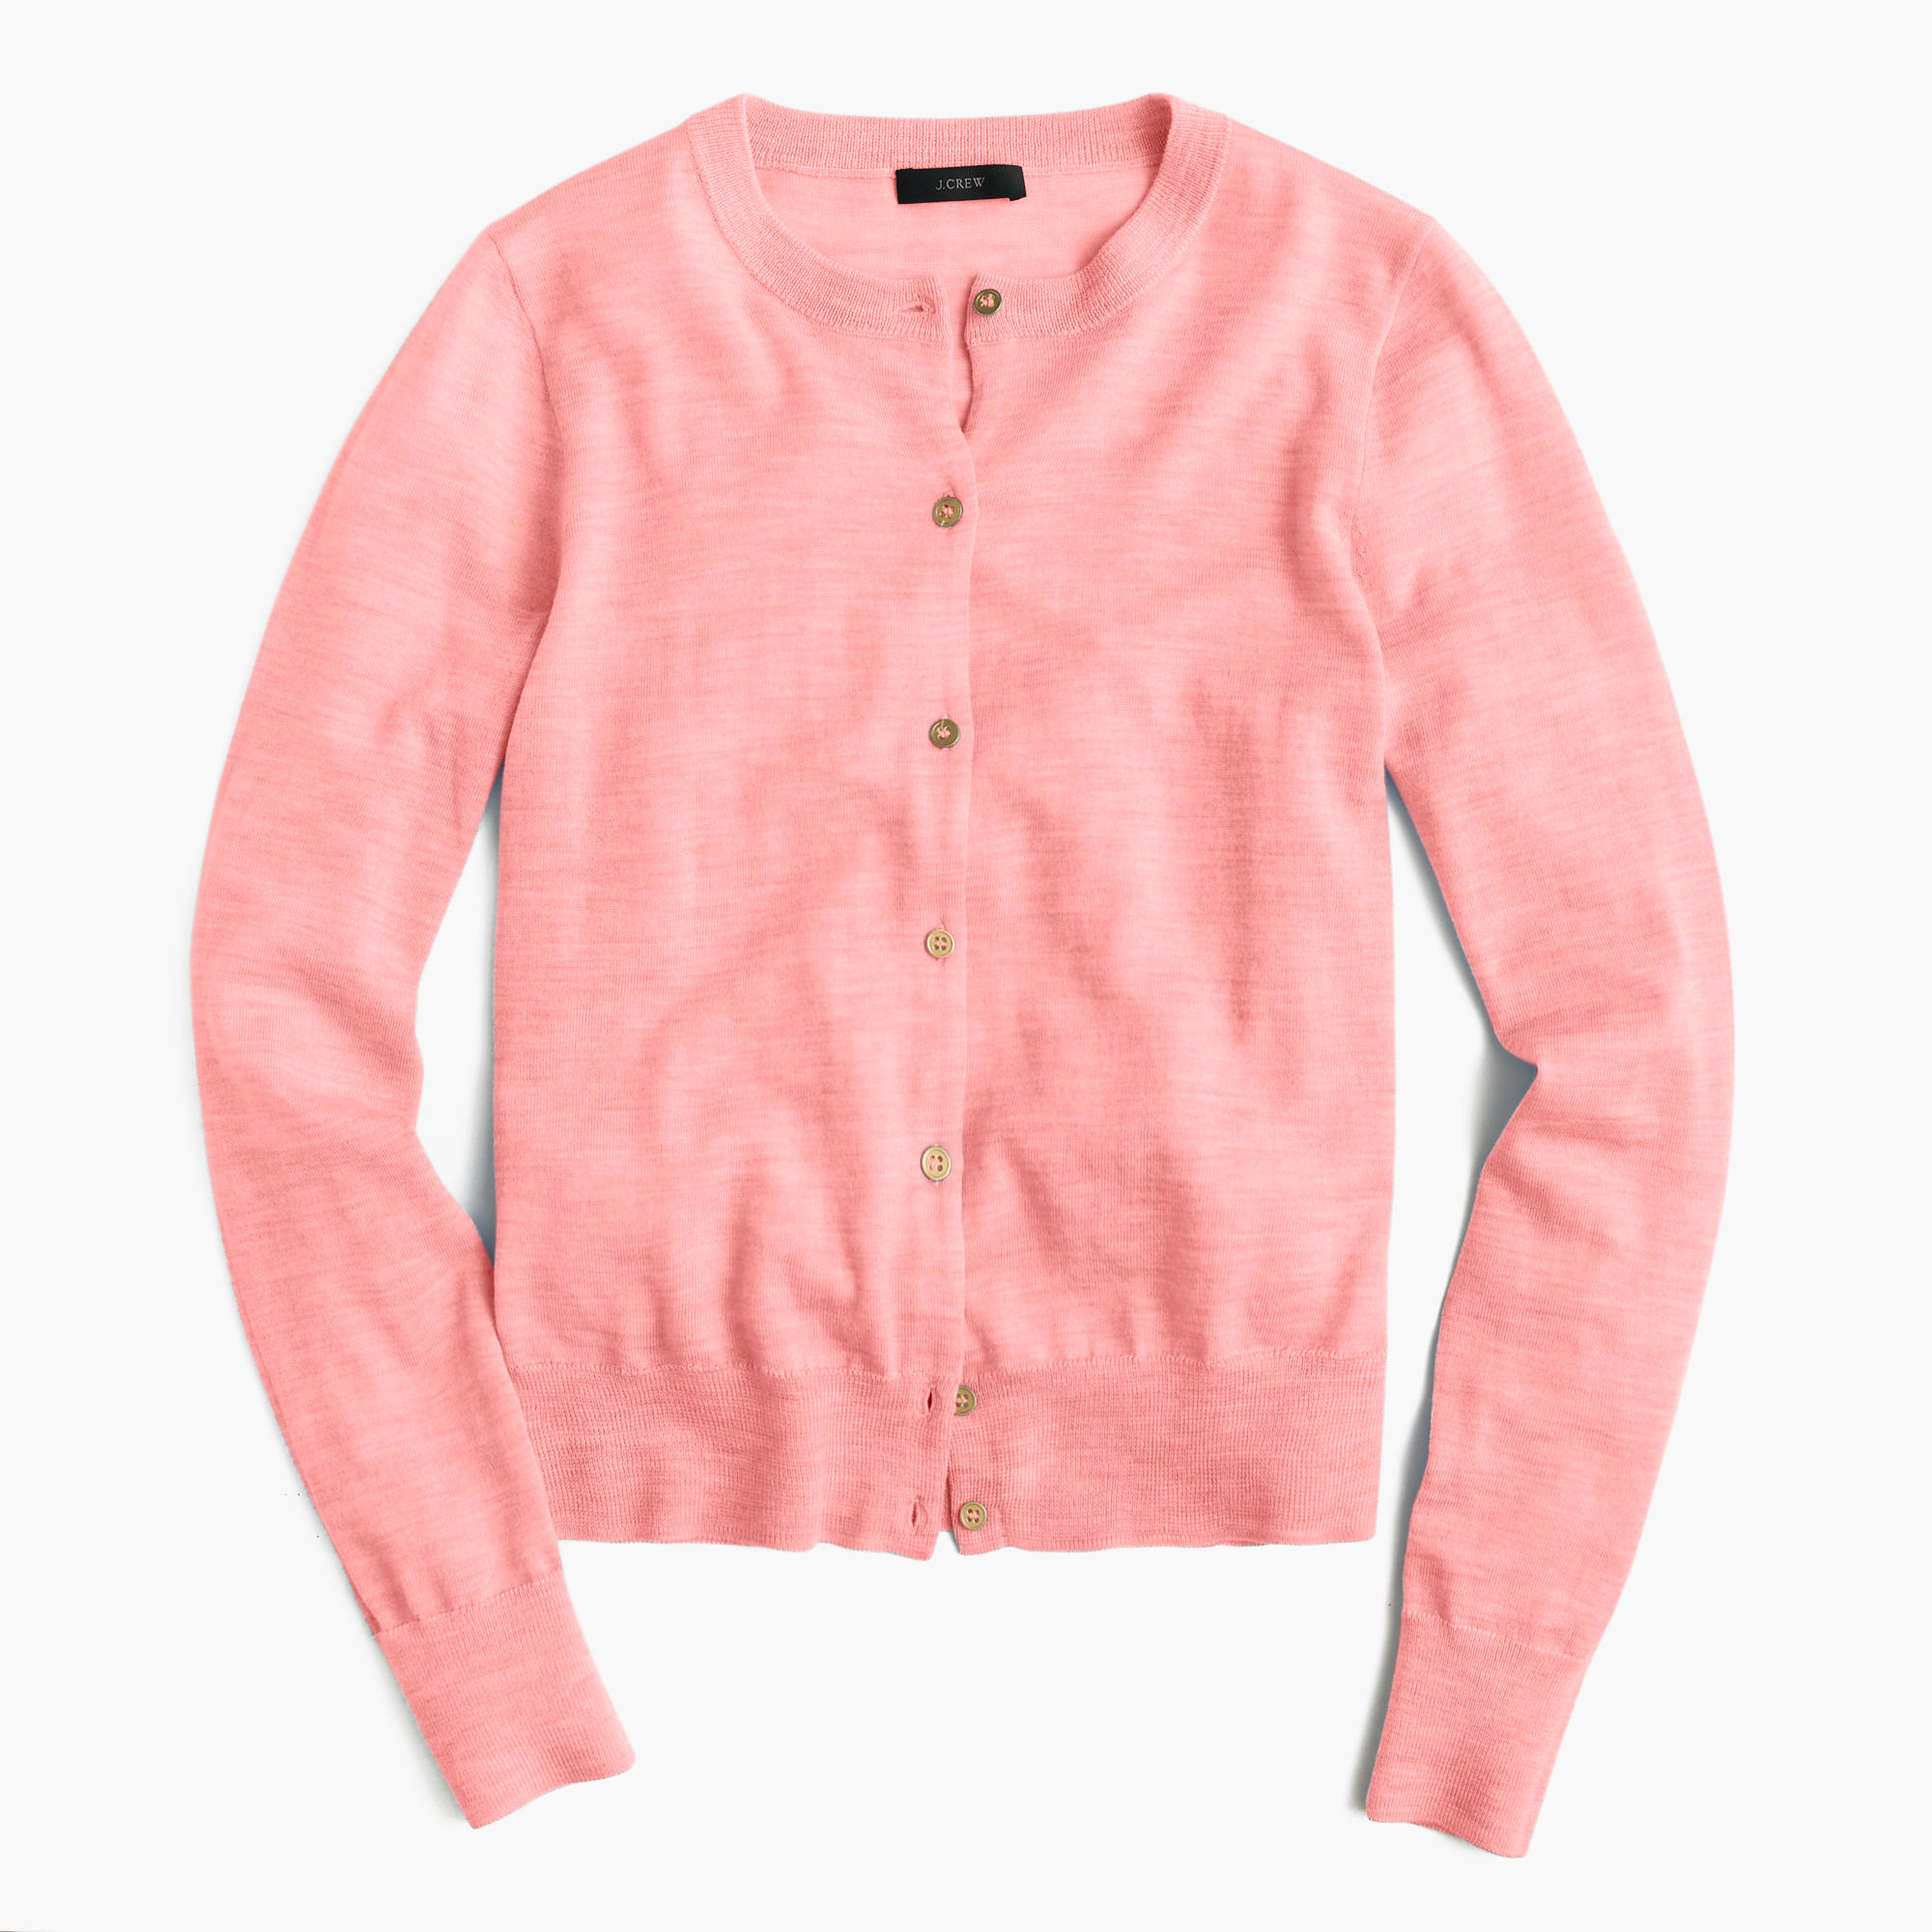 J.crew Lightweight Wool Jackie Cardigan Sweater in Pink | Lyst